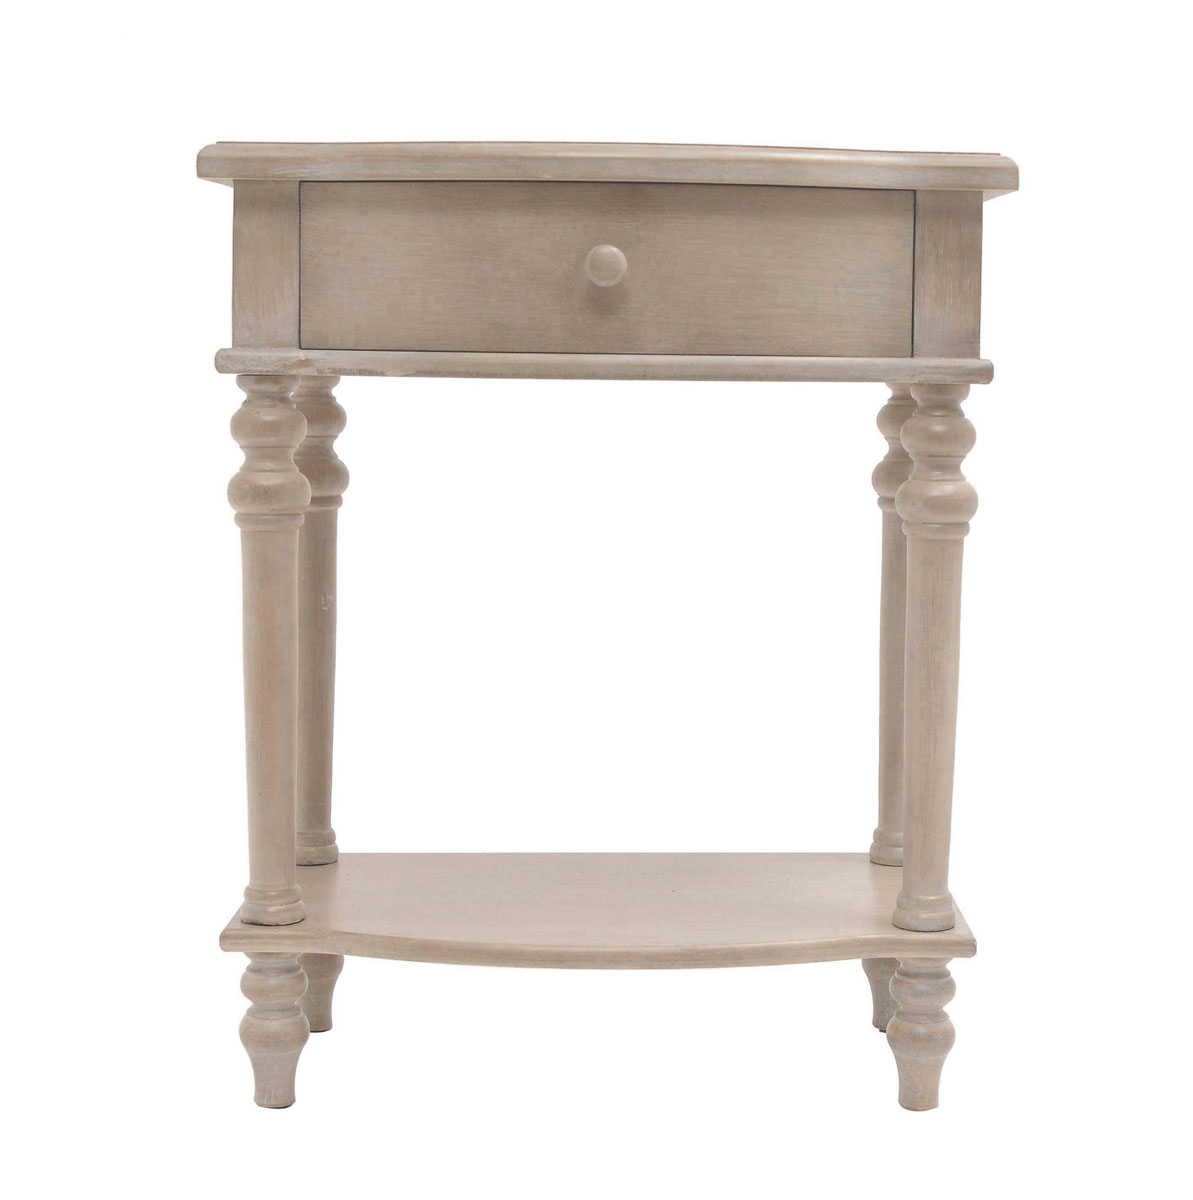 accent tables furniture safavieh one drawer table share this product contemporary marble coffee tiffany peacock floor lamp drum stool gallerie sofa pottery barn reclaimed wood